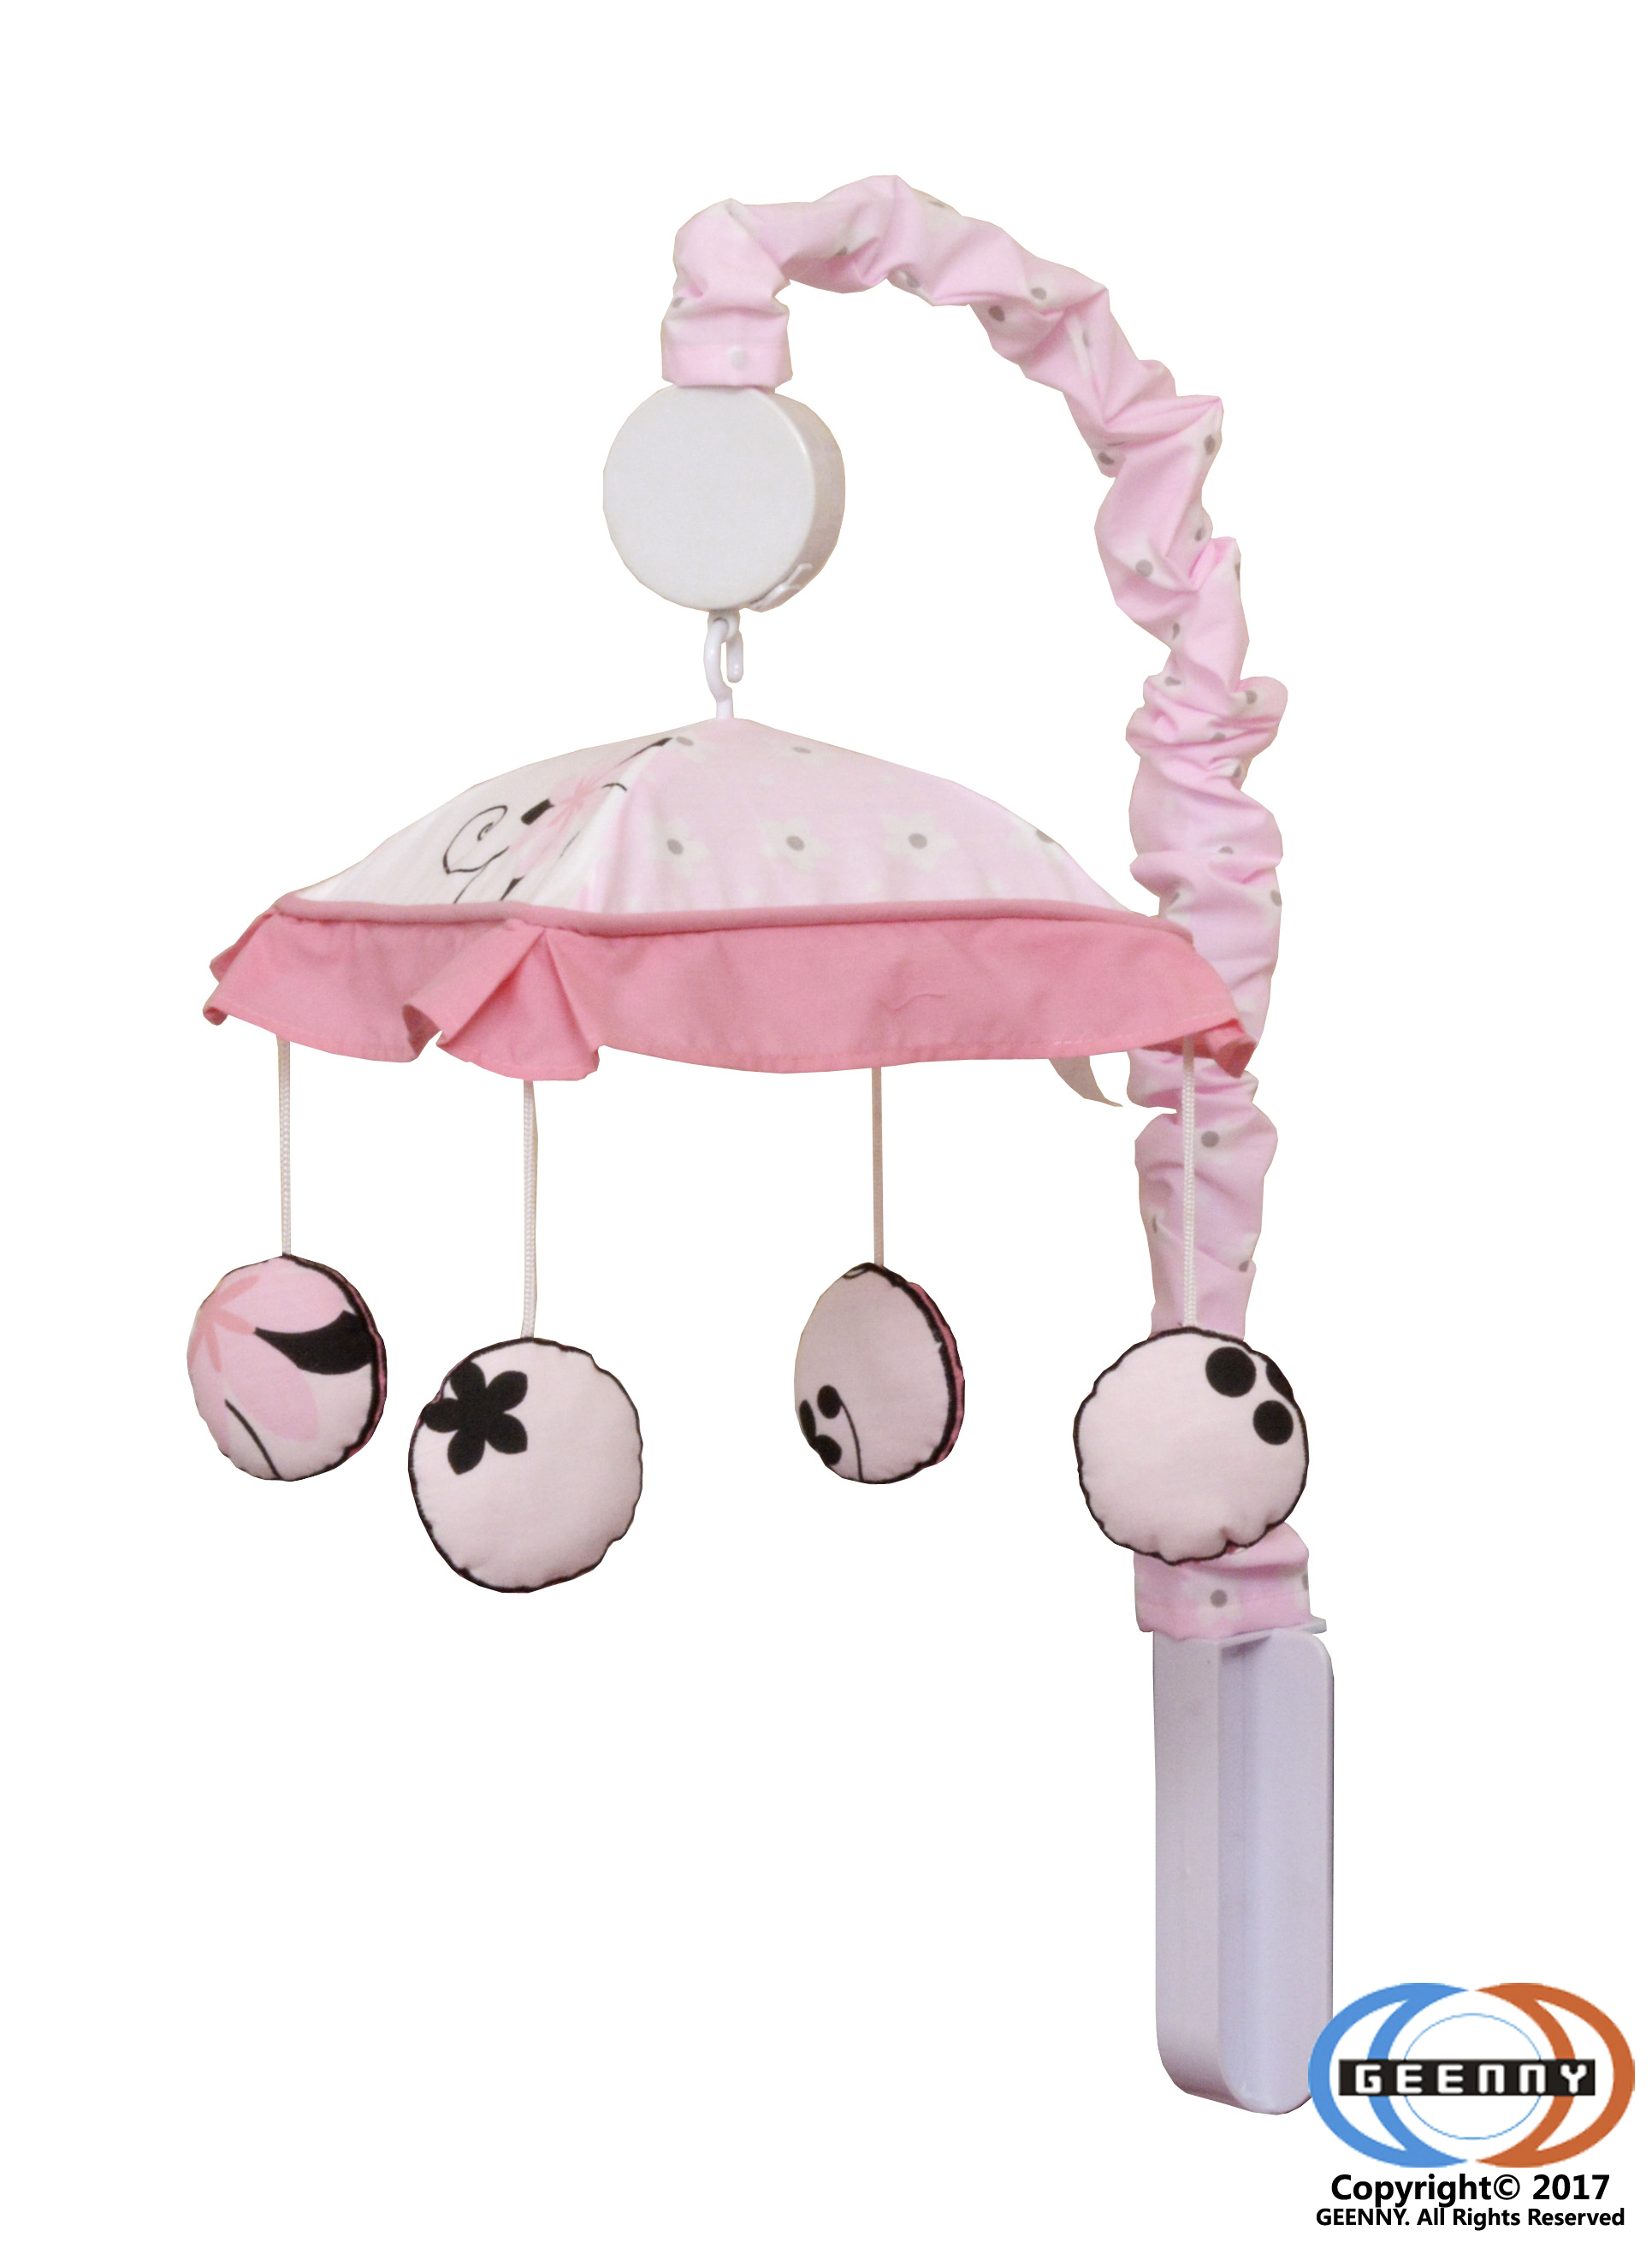 GEENNY Musical Mobile, New Pink Butterfly by GEENNY